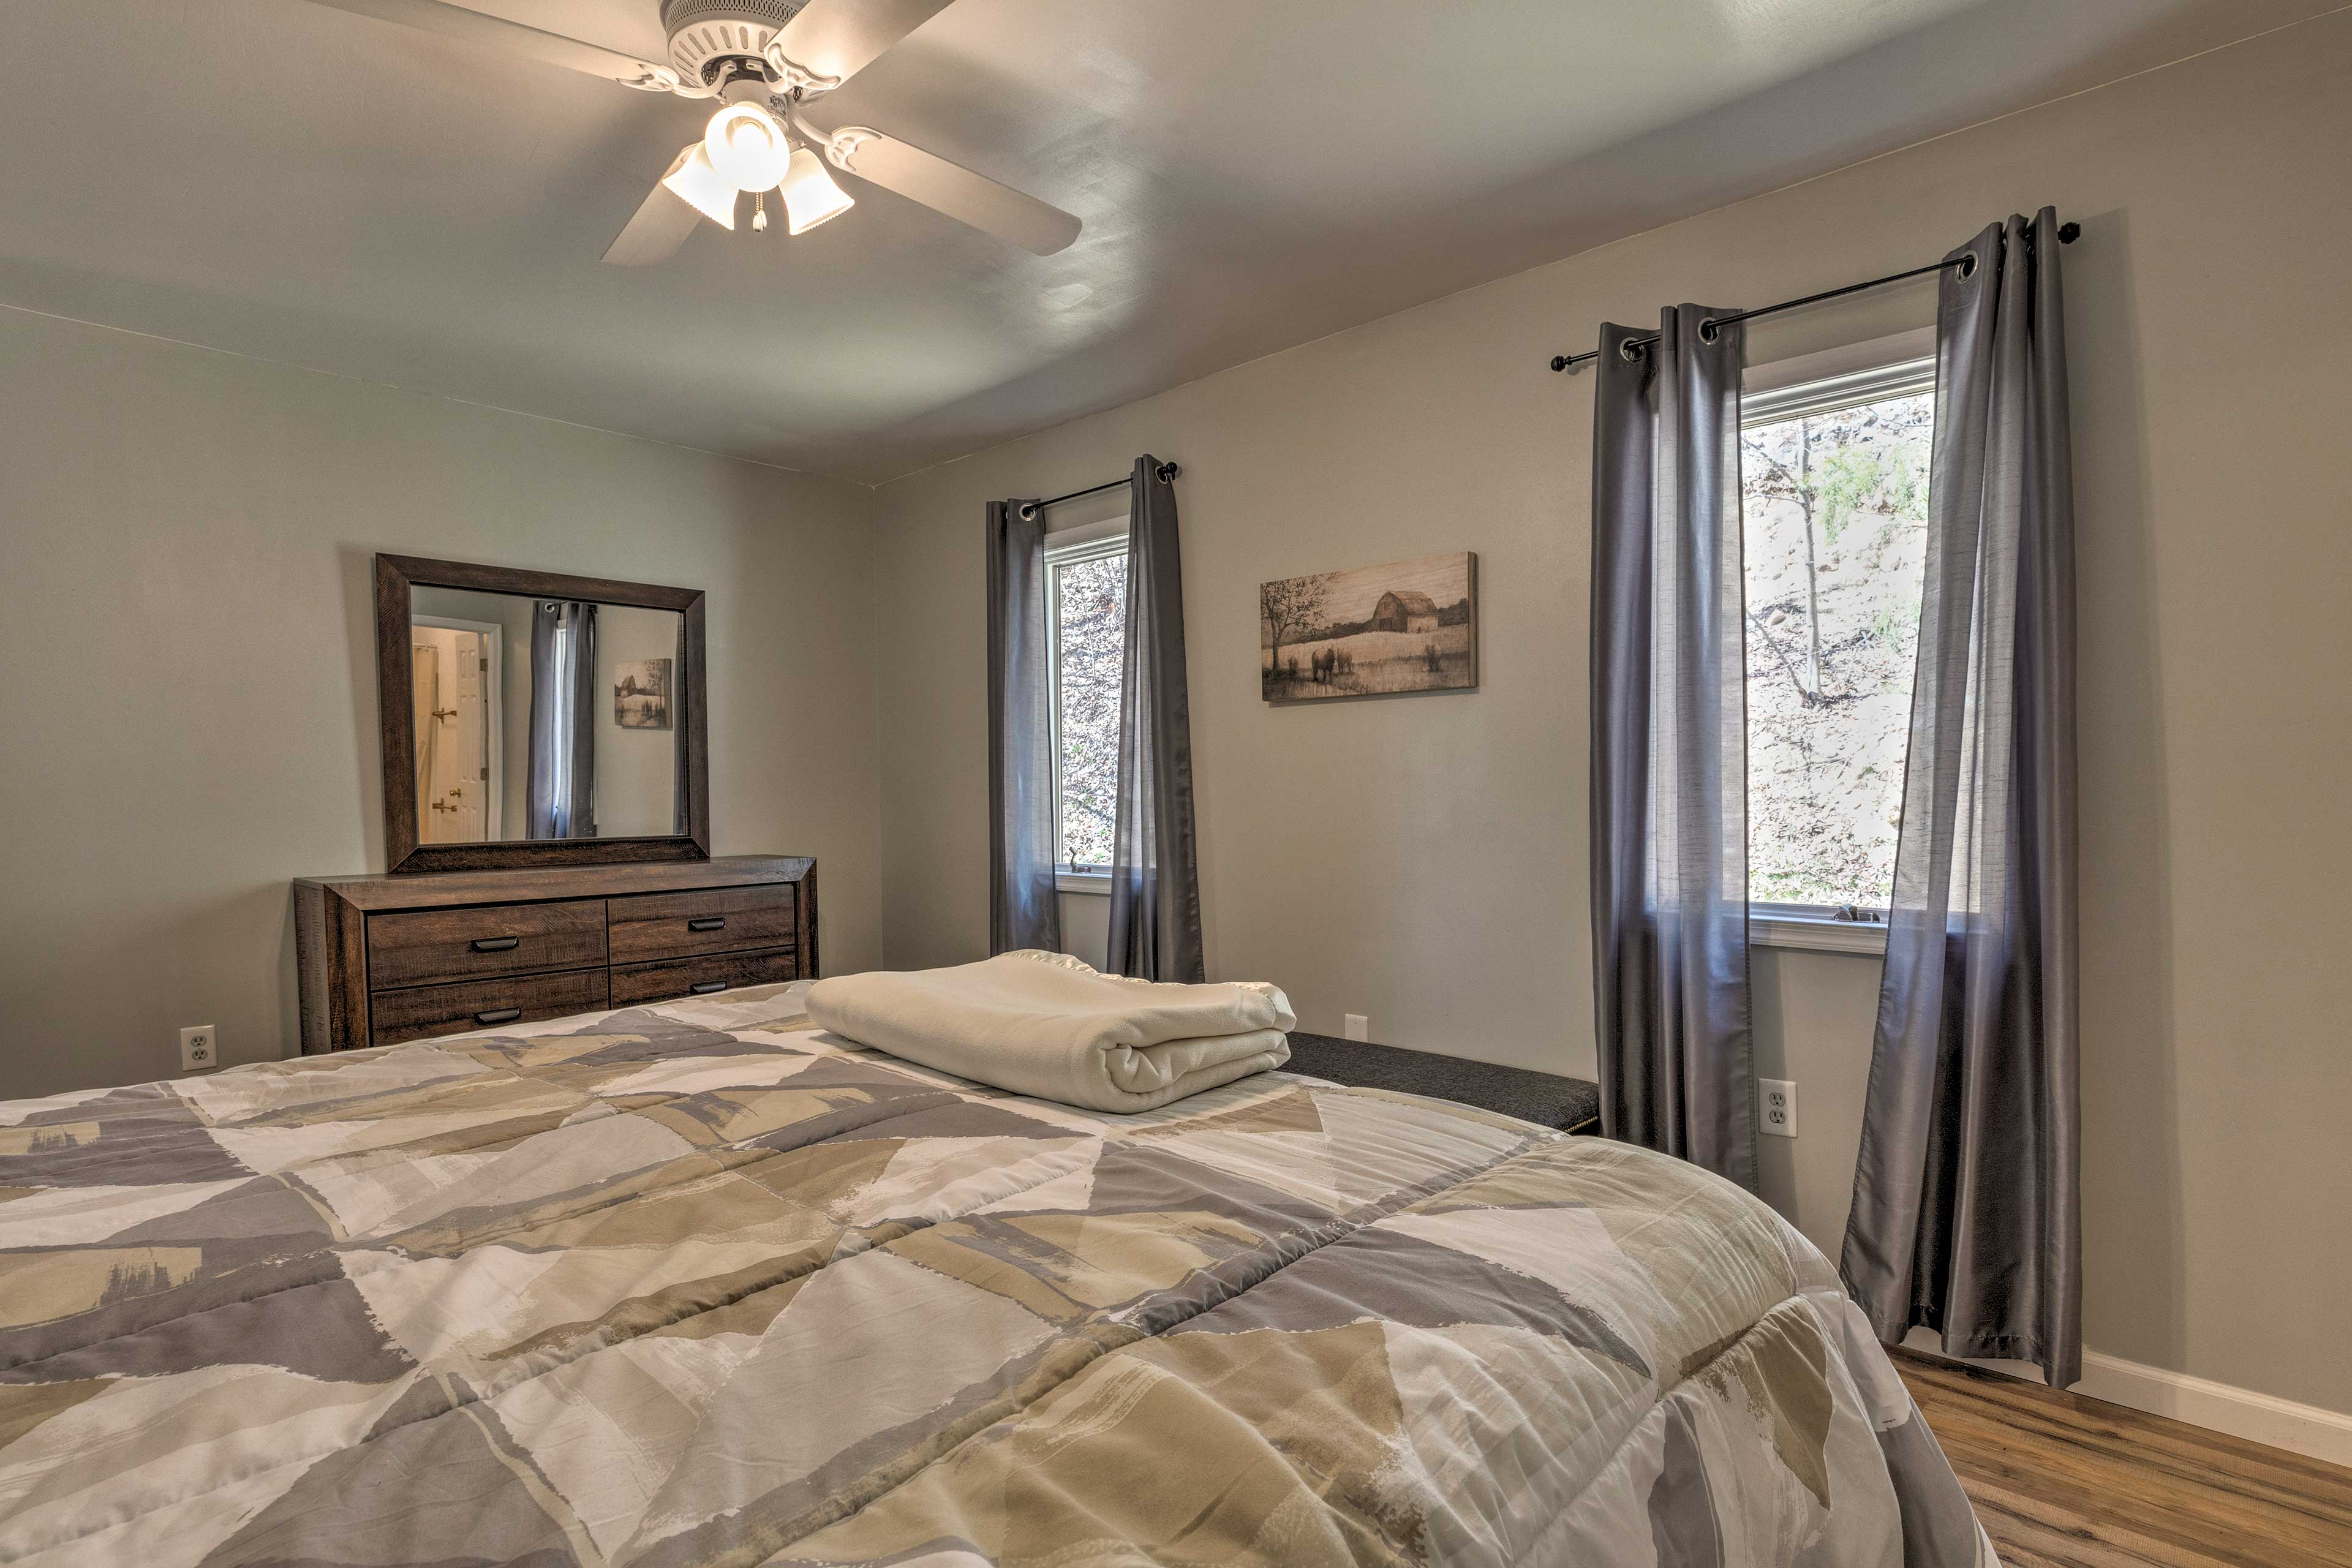 Two lucky travelers can claim this spacious king bedroom.